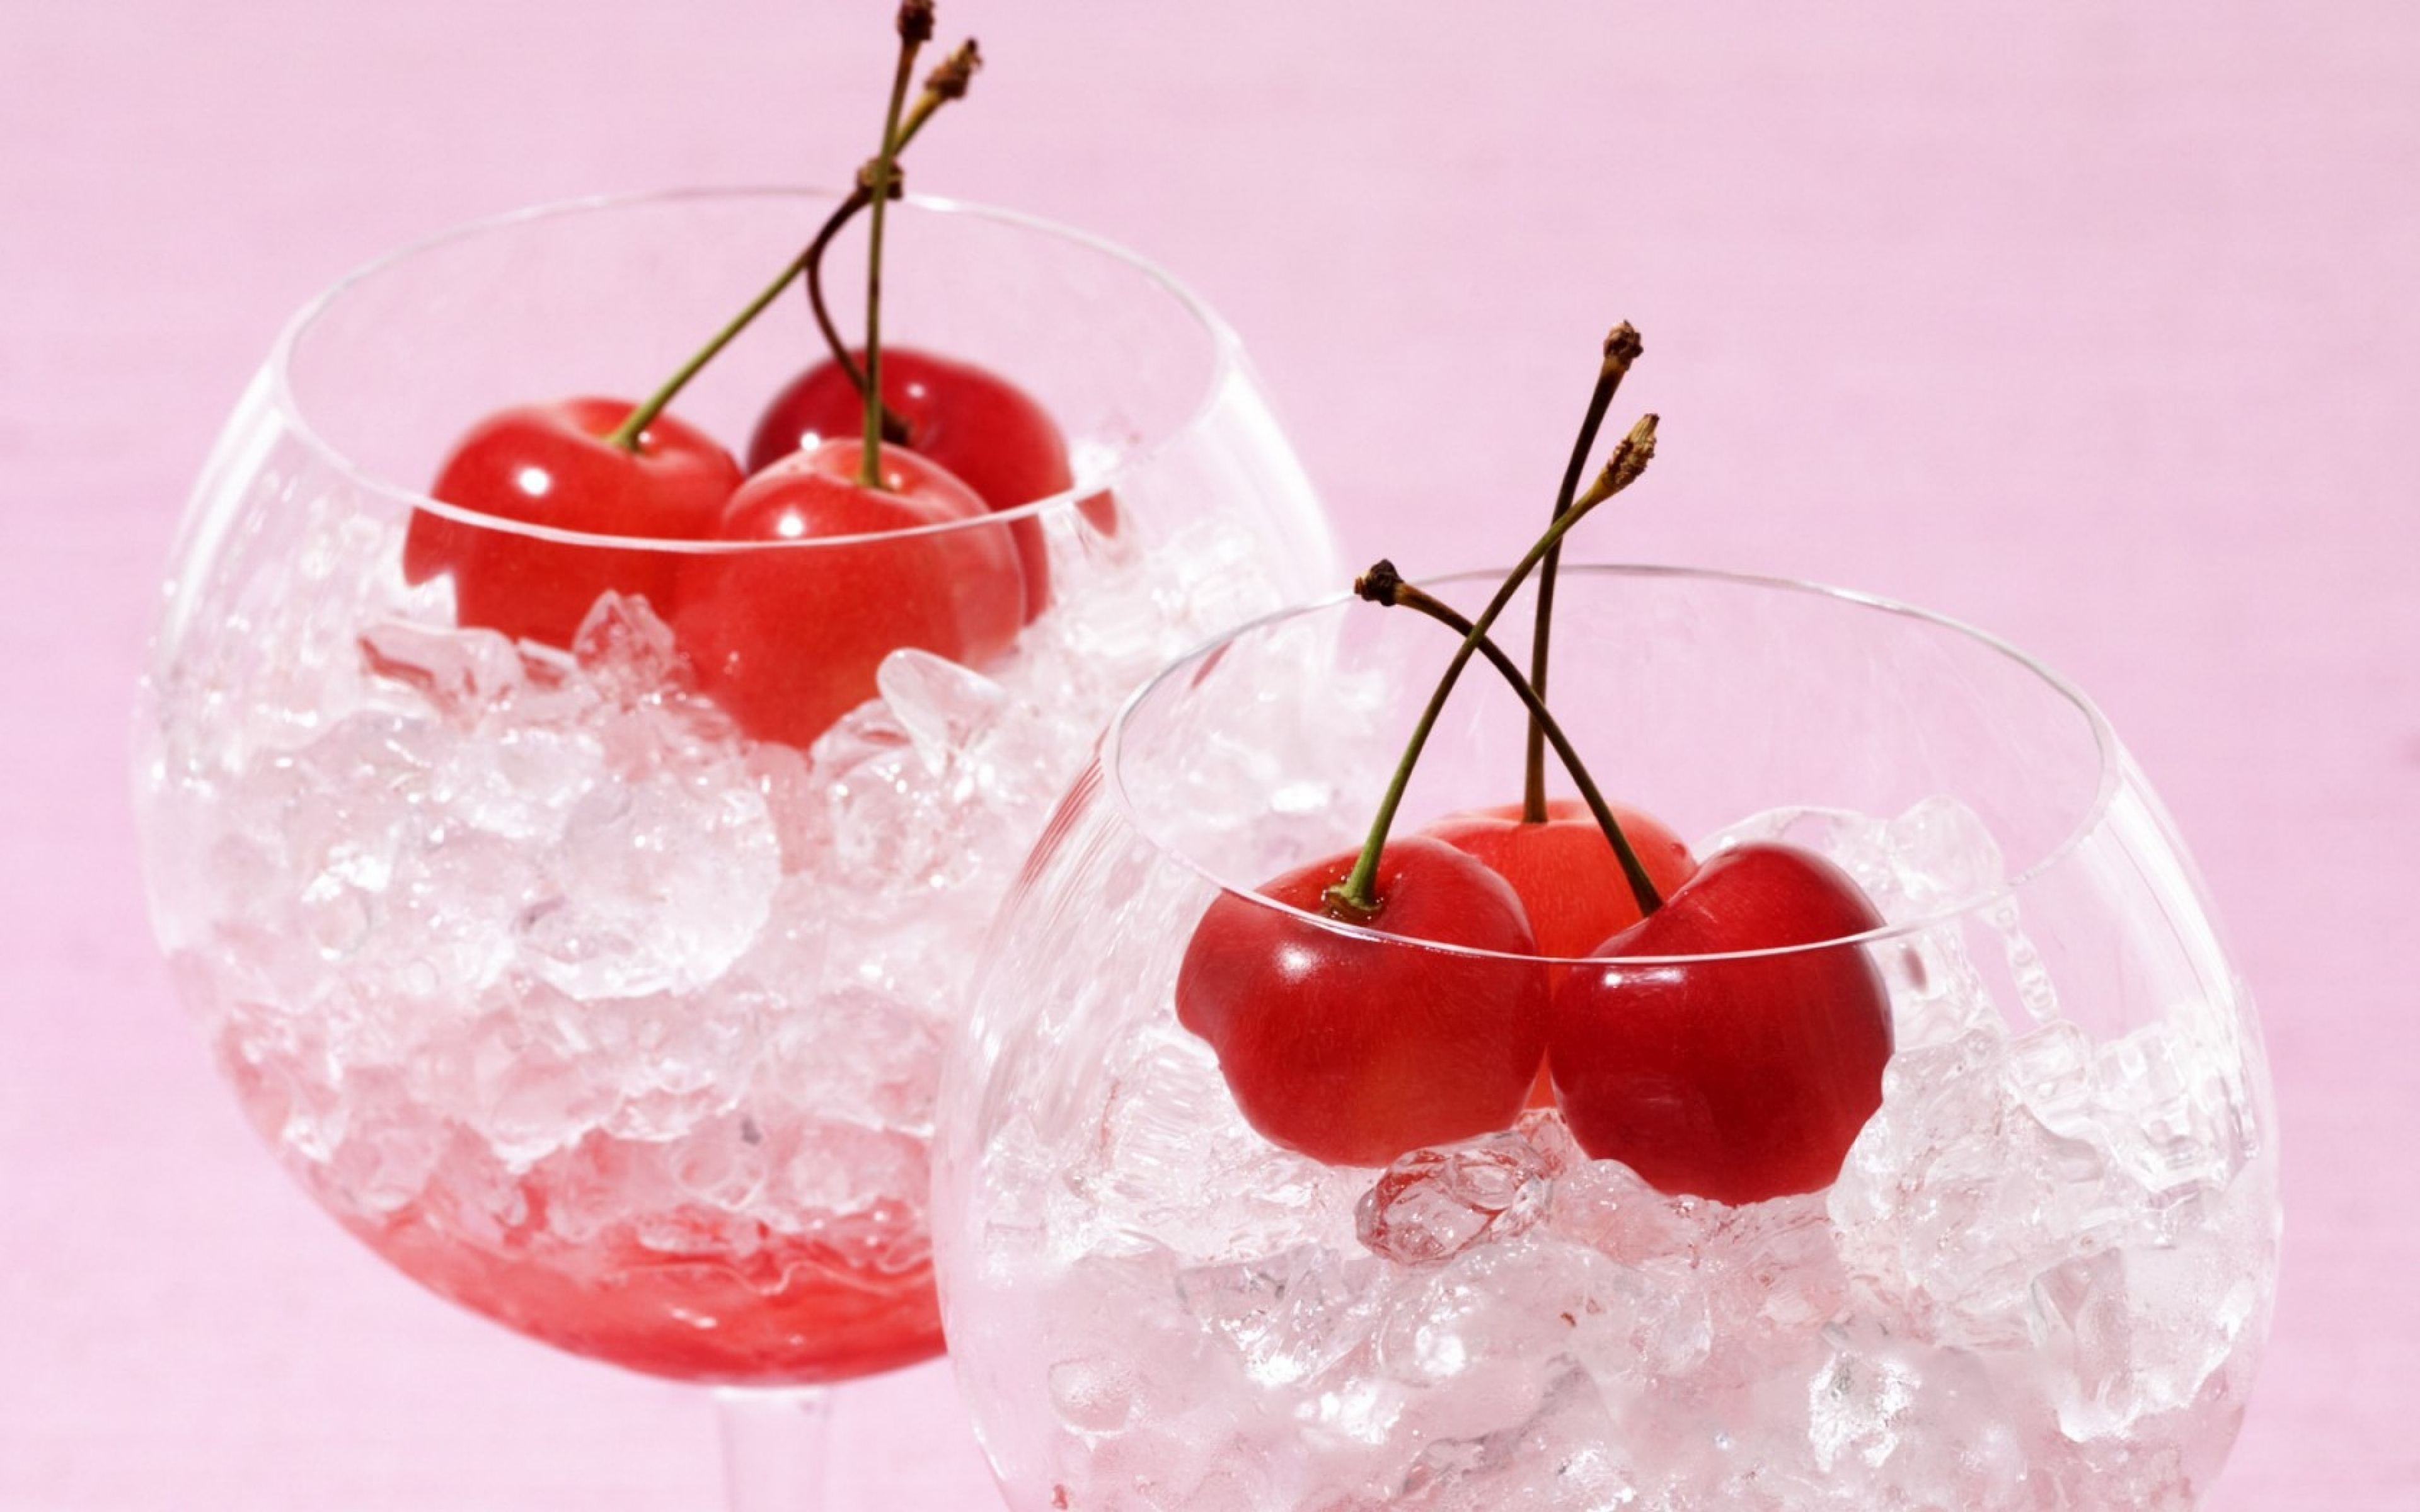 cherry_glass_ice_fruit_cocktail_glasses_ice_cubes_74219_3840x2400